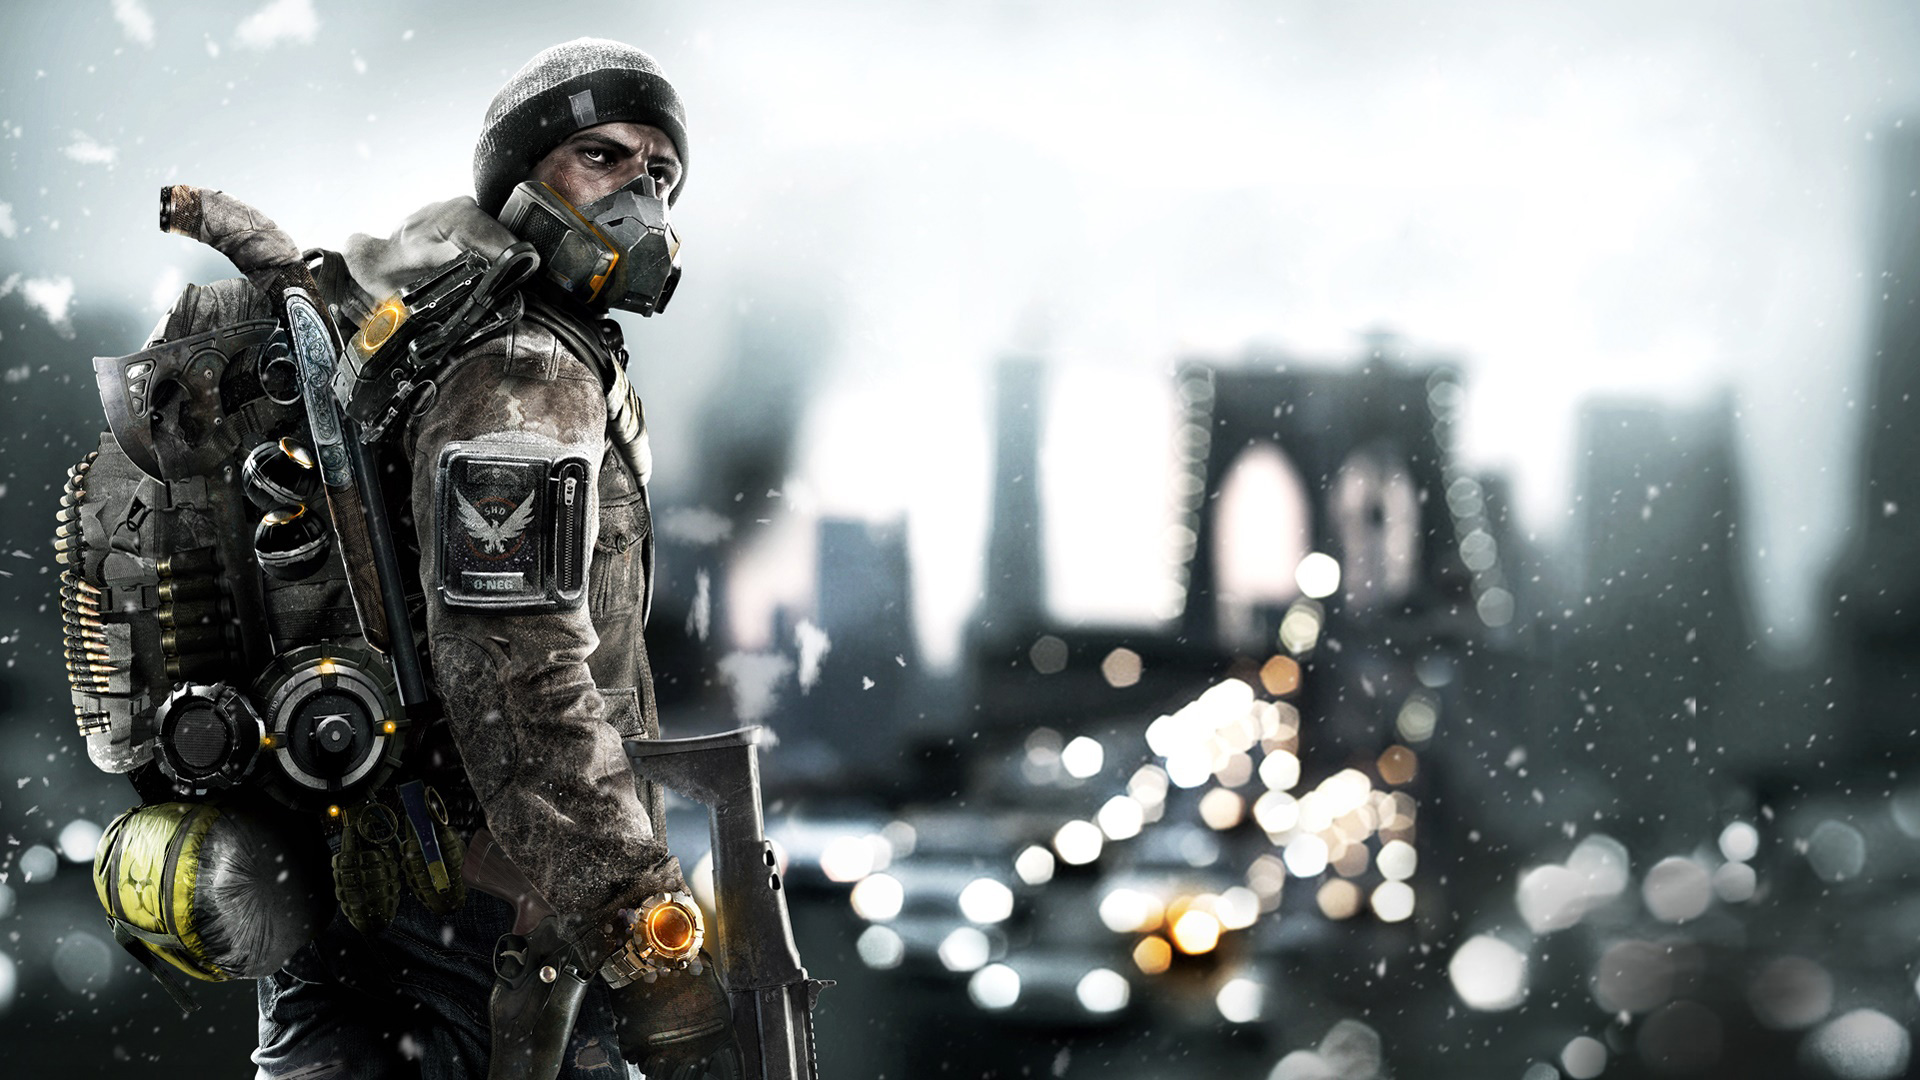 Tom Clancys The Division Season Pass Wallpapers HD Wallpapers 1920x1080